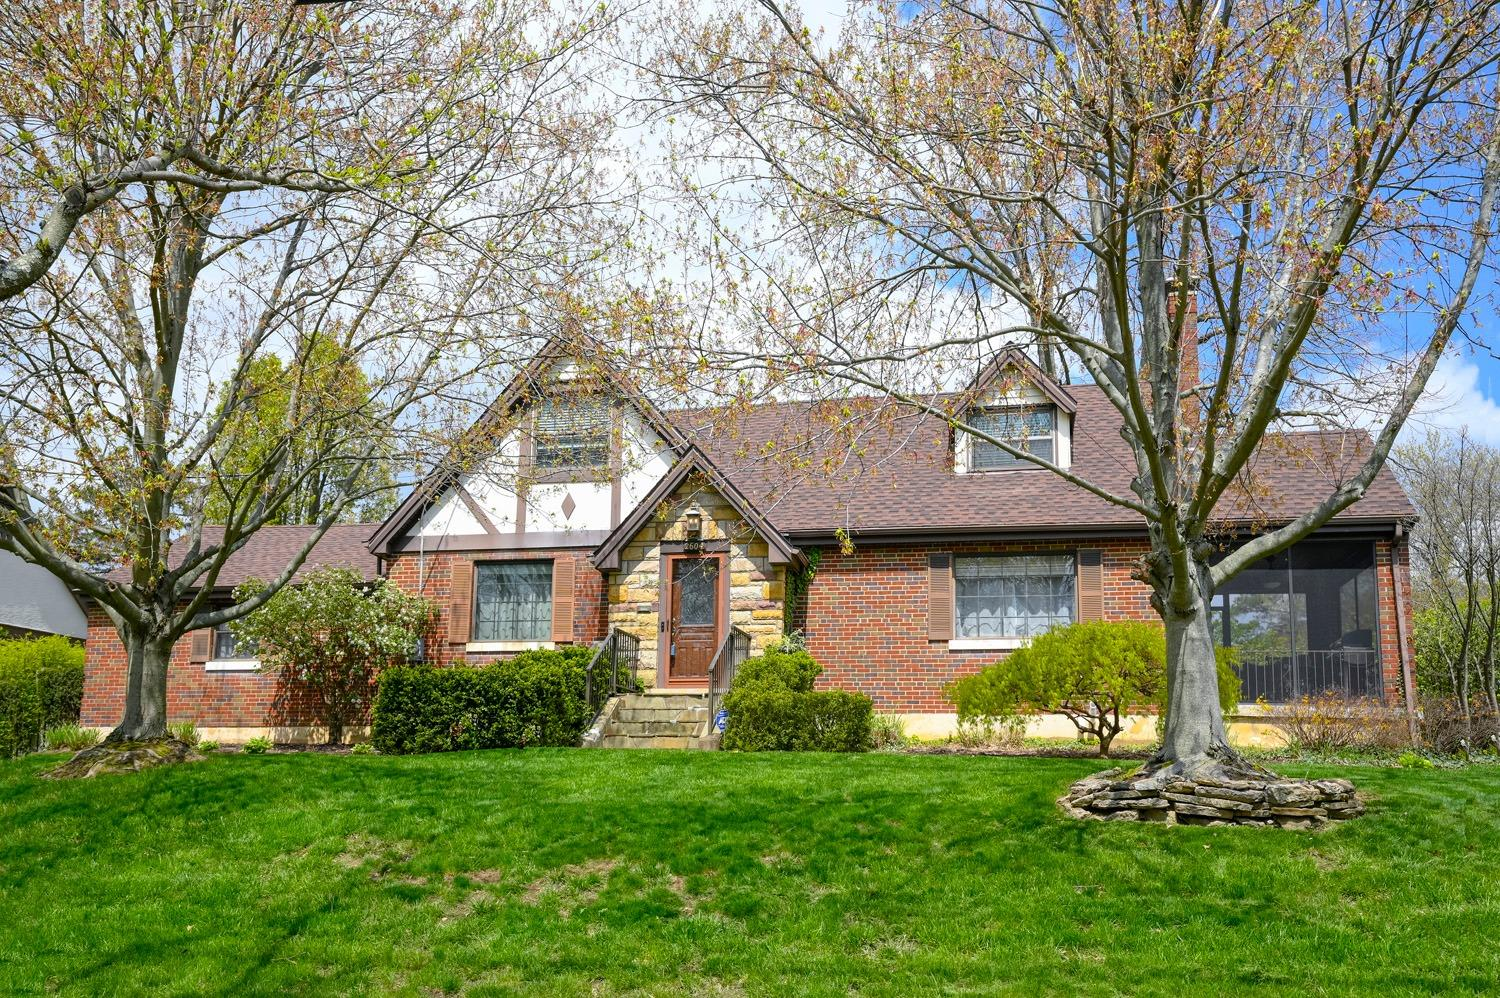 2604 Mt Airy Ave Mt. Airy, OH